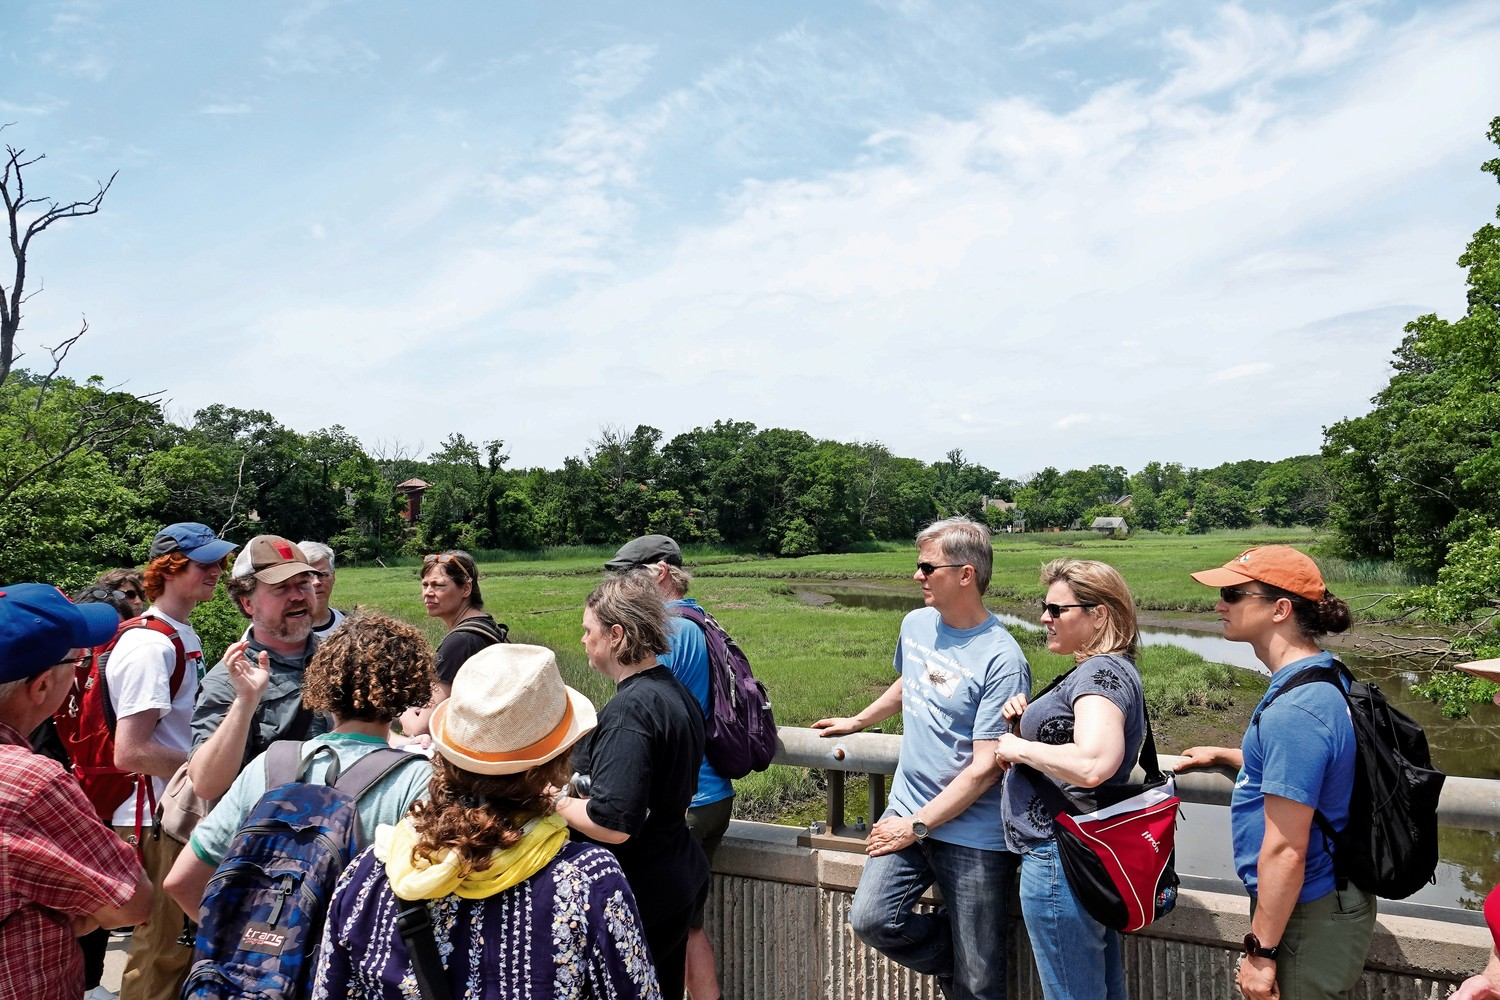 People take part in a tour of Lemon Creek on Staten Island led by NYC H2O, an organization that seeks to educate people about New York City's water system. NYC H2O will host a new walking tour in and around Marble Hill that will show the history of the Harlem Ship Canal on Aug. 4.